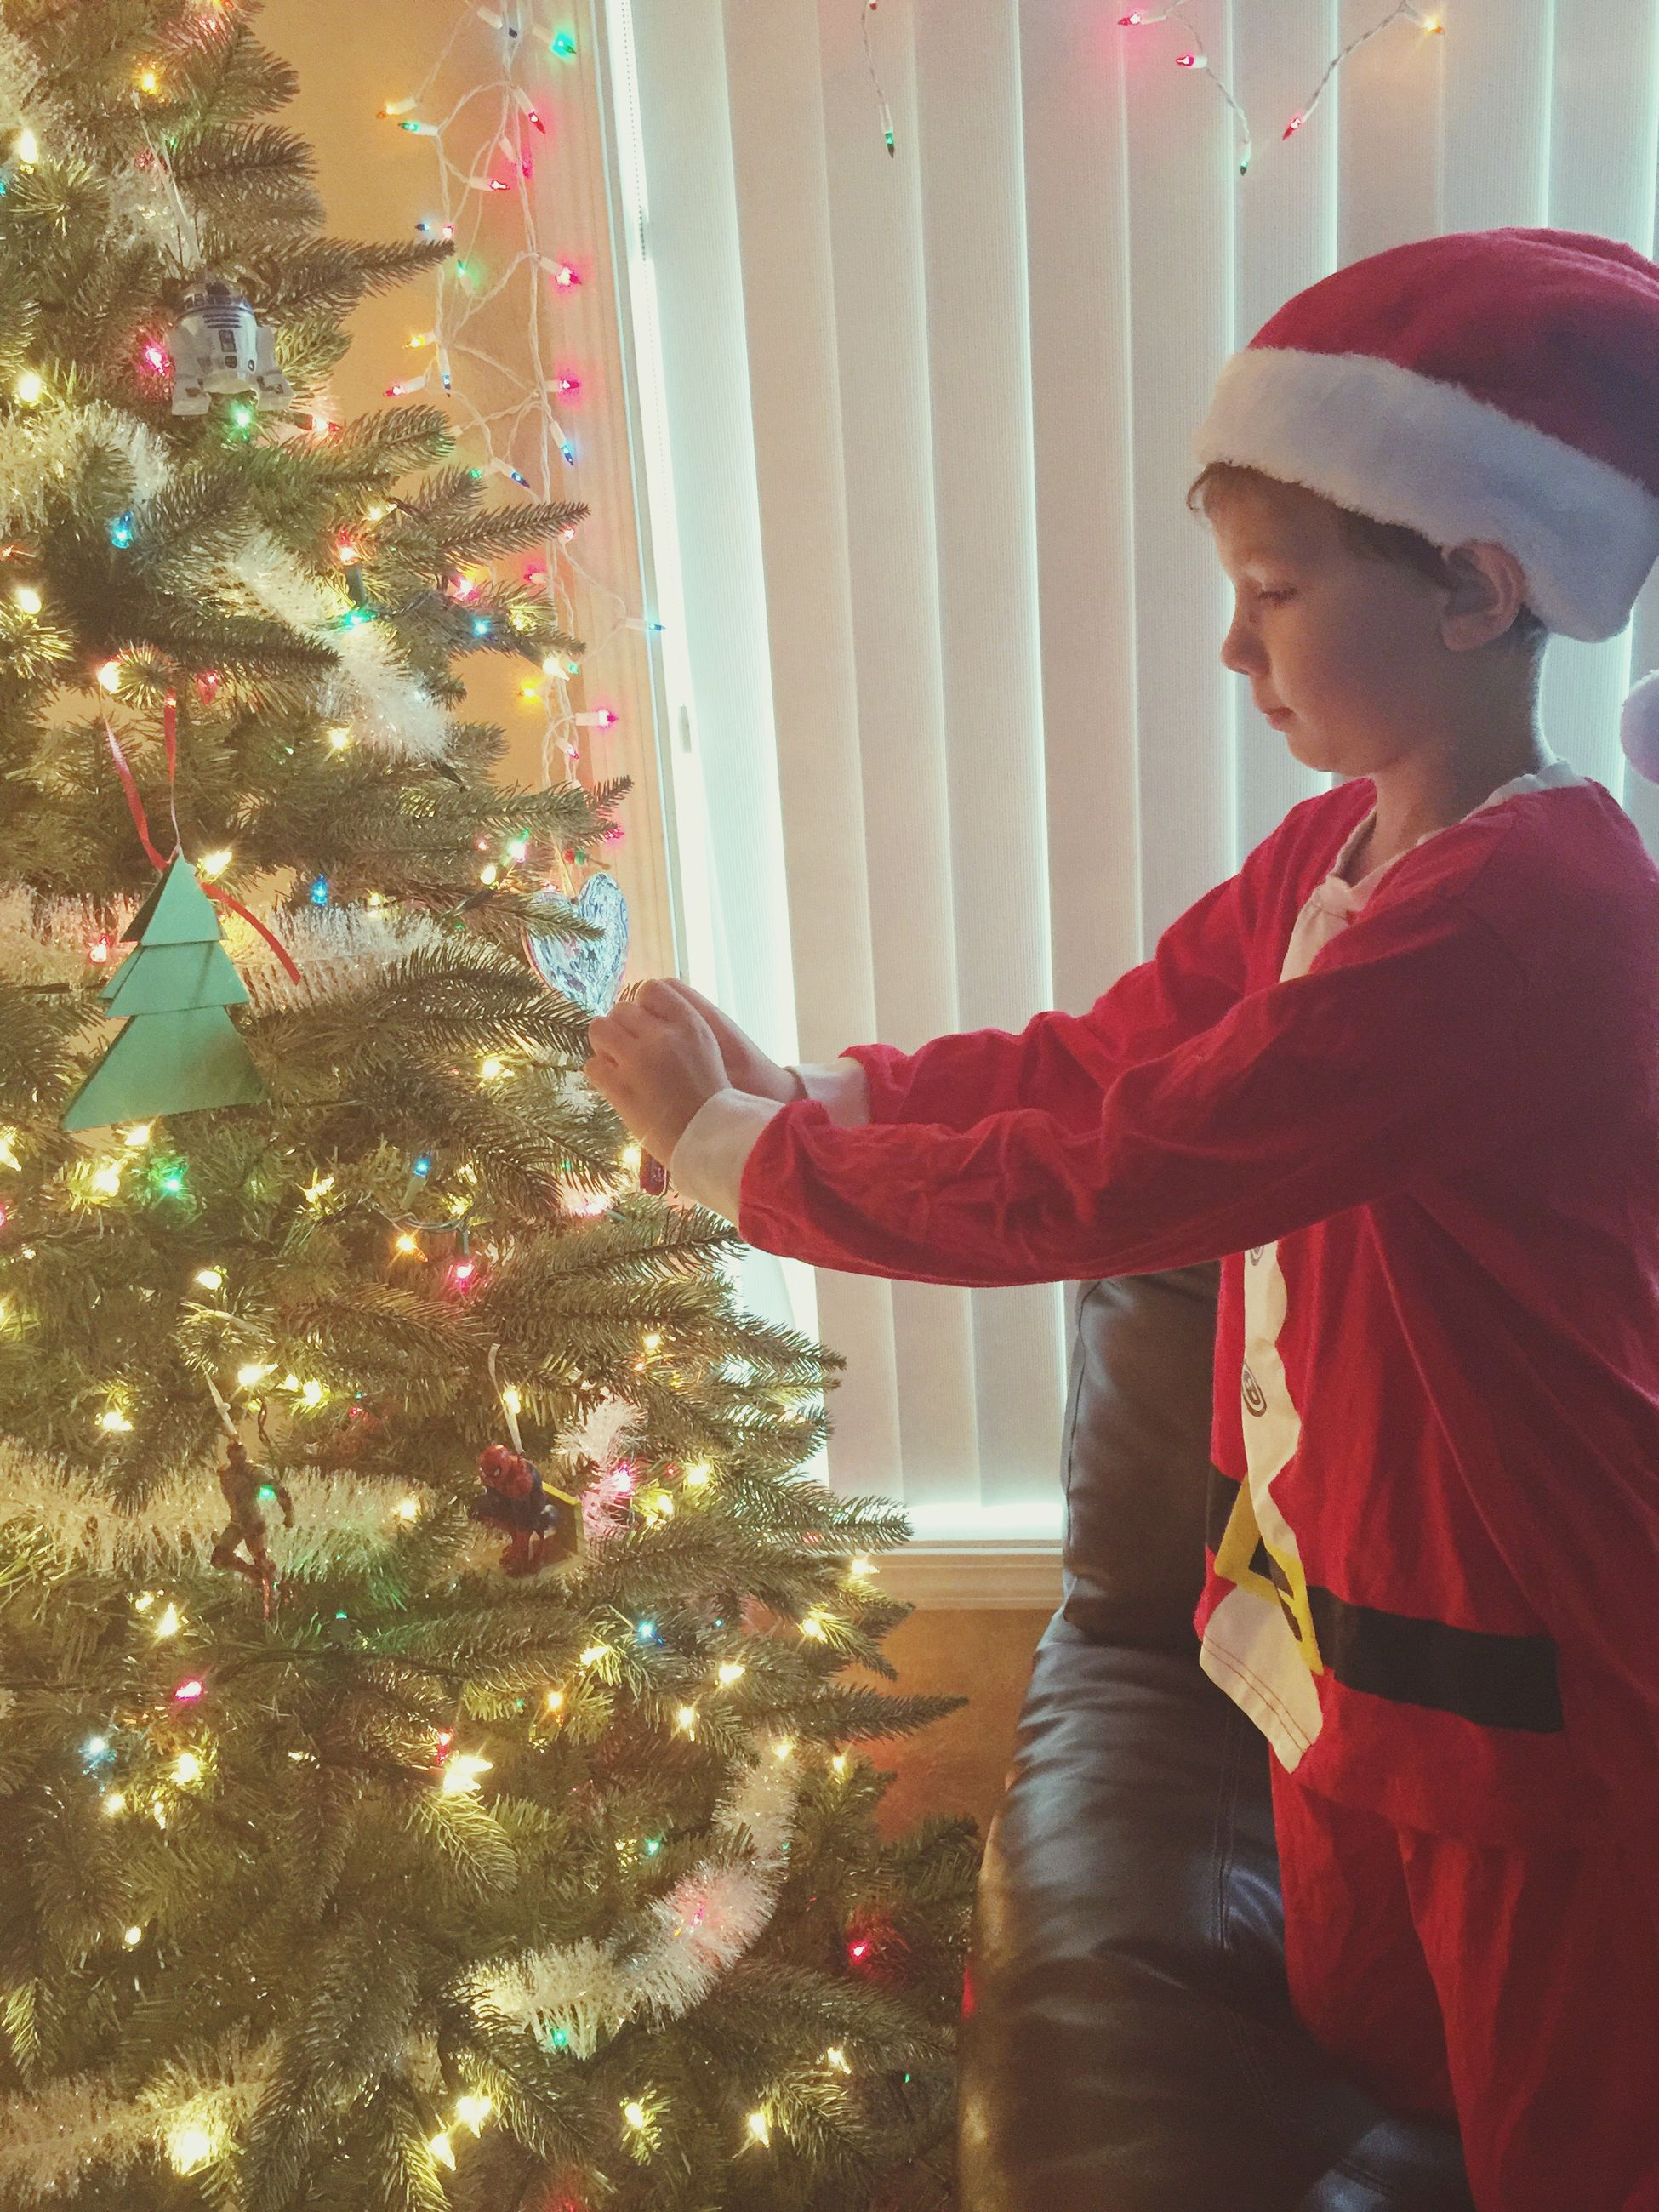 christmas, christmas tree, celebration, holiday - event, tree, indoors, christmas present, one person, domestic life, christmas decoration, anticipation, people, adults only, winter, christmas lights, childhood, gift, living room, multi colored, only men, adult, young adult, one man only, day